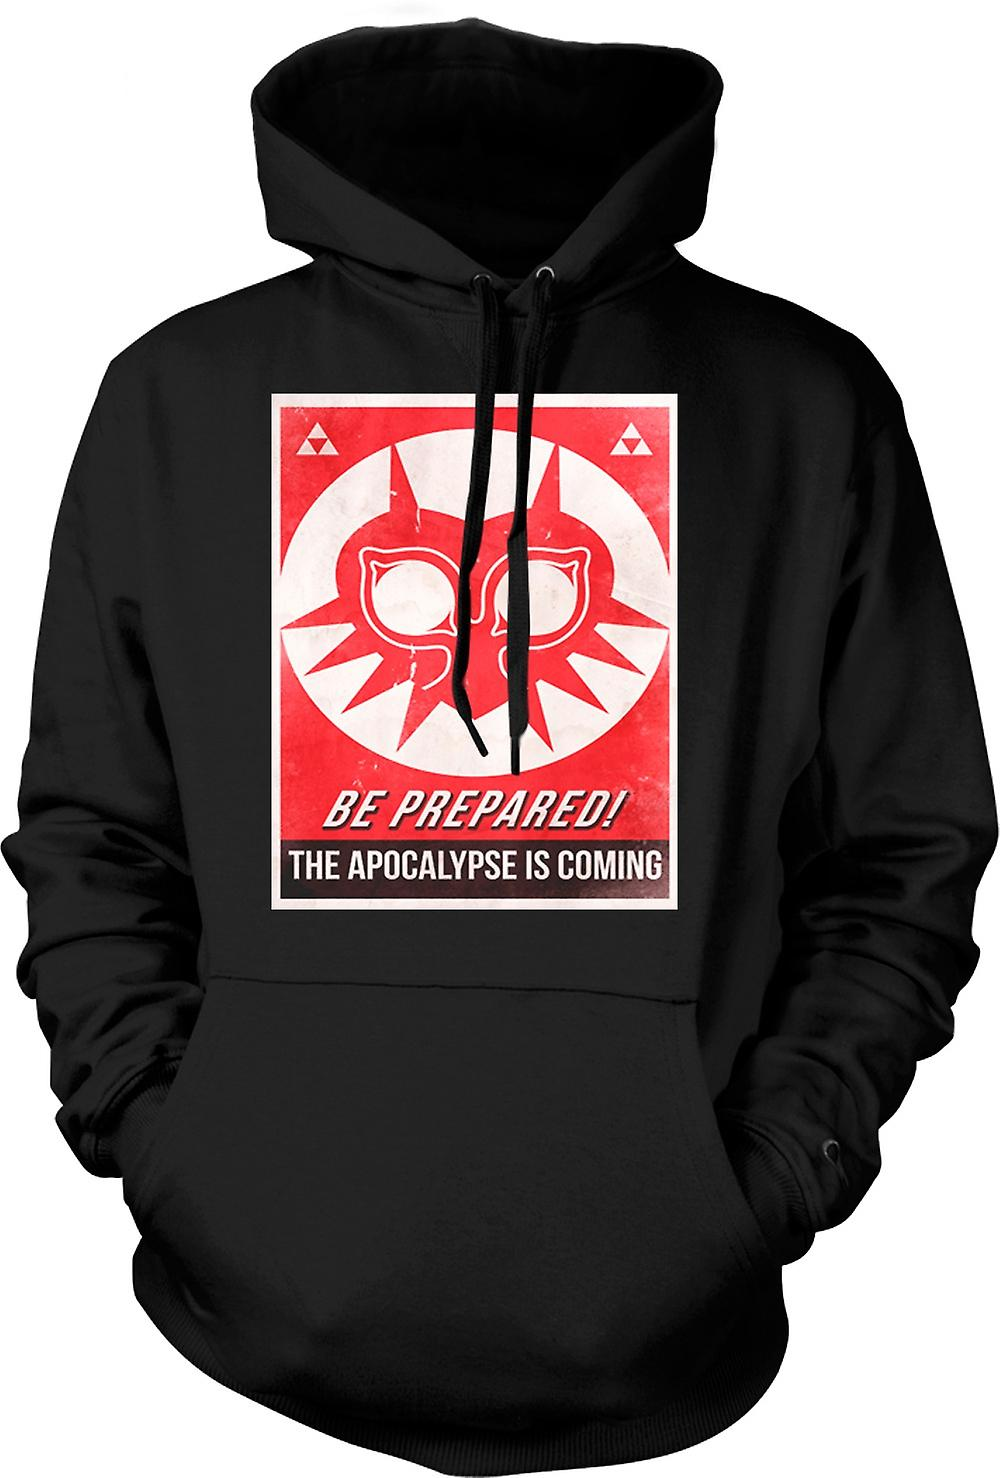 Mens Hoodie - Be Prepared, The Apocolypse Is Coming